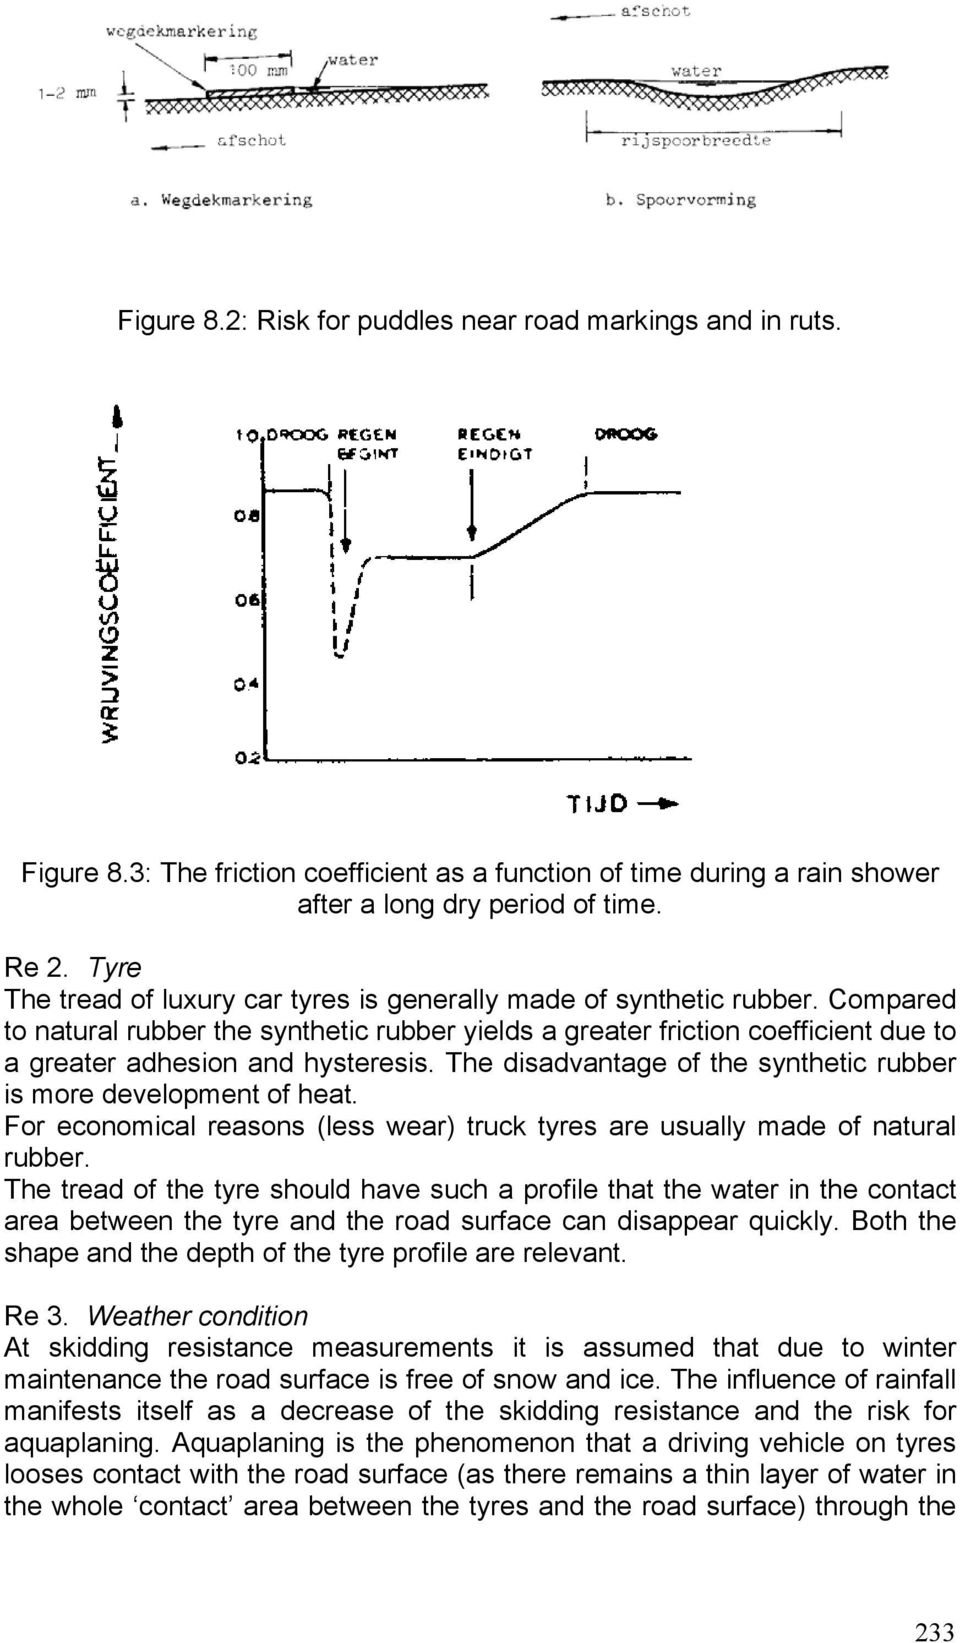 Compared to natural rubber the synthetic rubber yields a greater friction coefficient due to a greater adhesion and hysteresis. The disadvantage of the synthetic rubber is more development of heat.